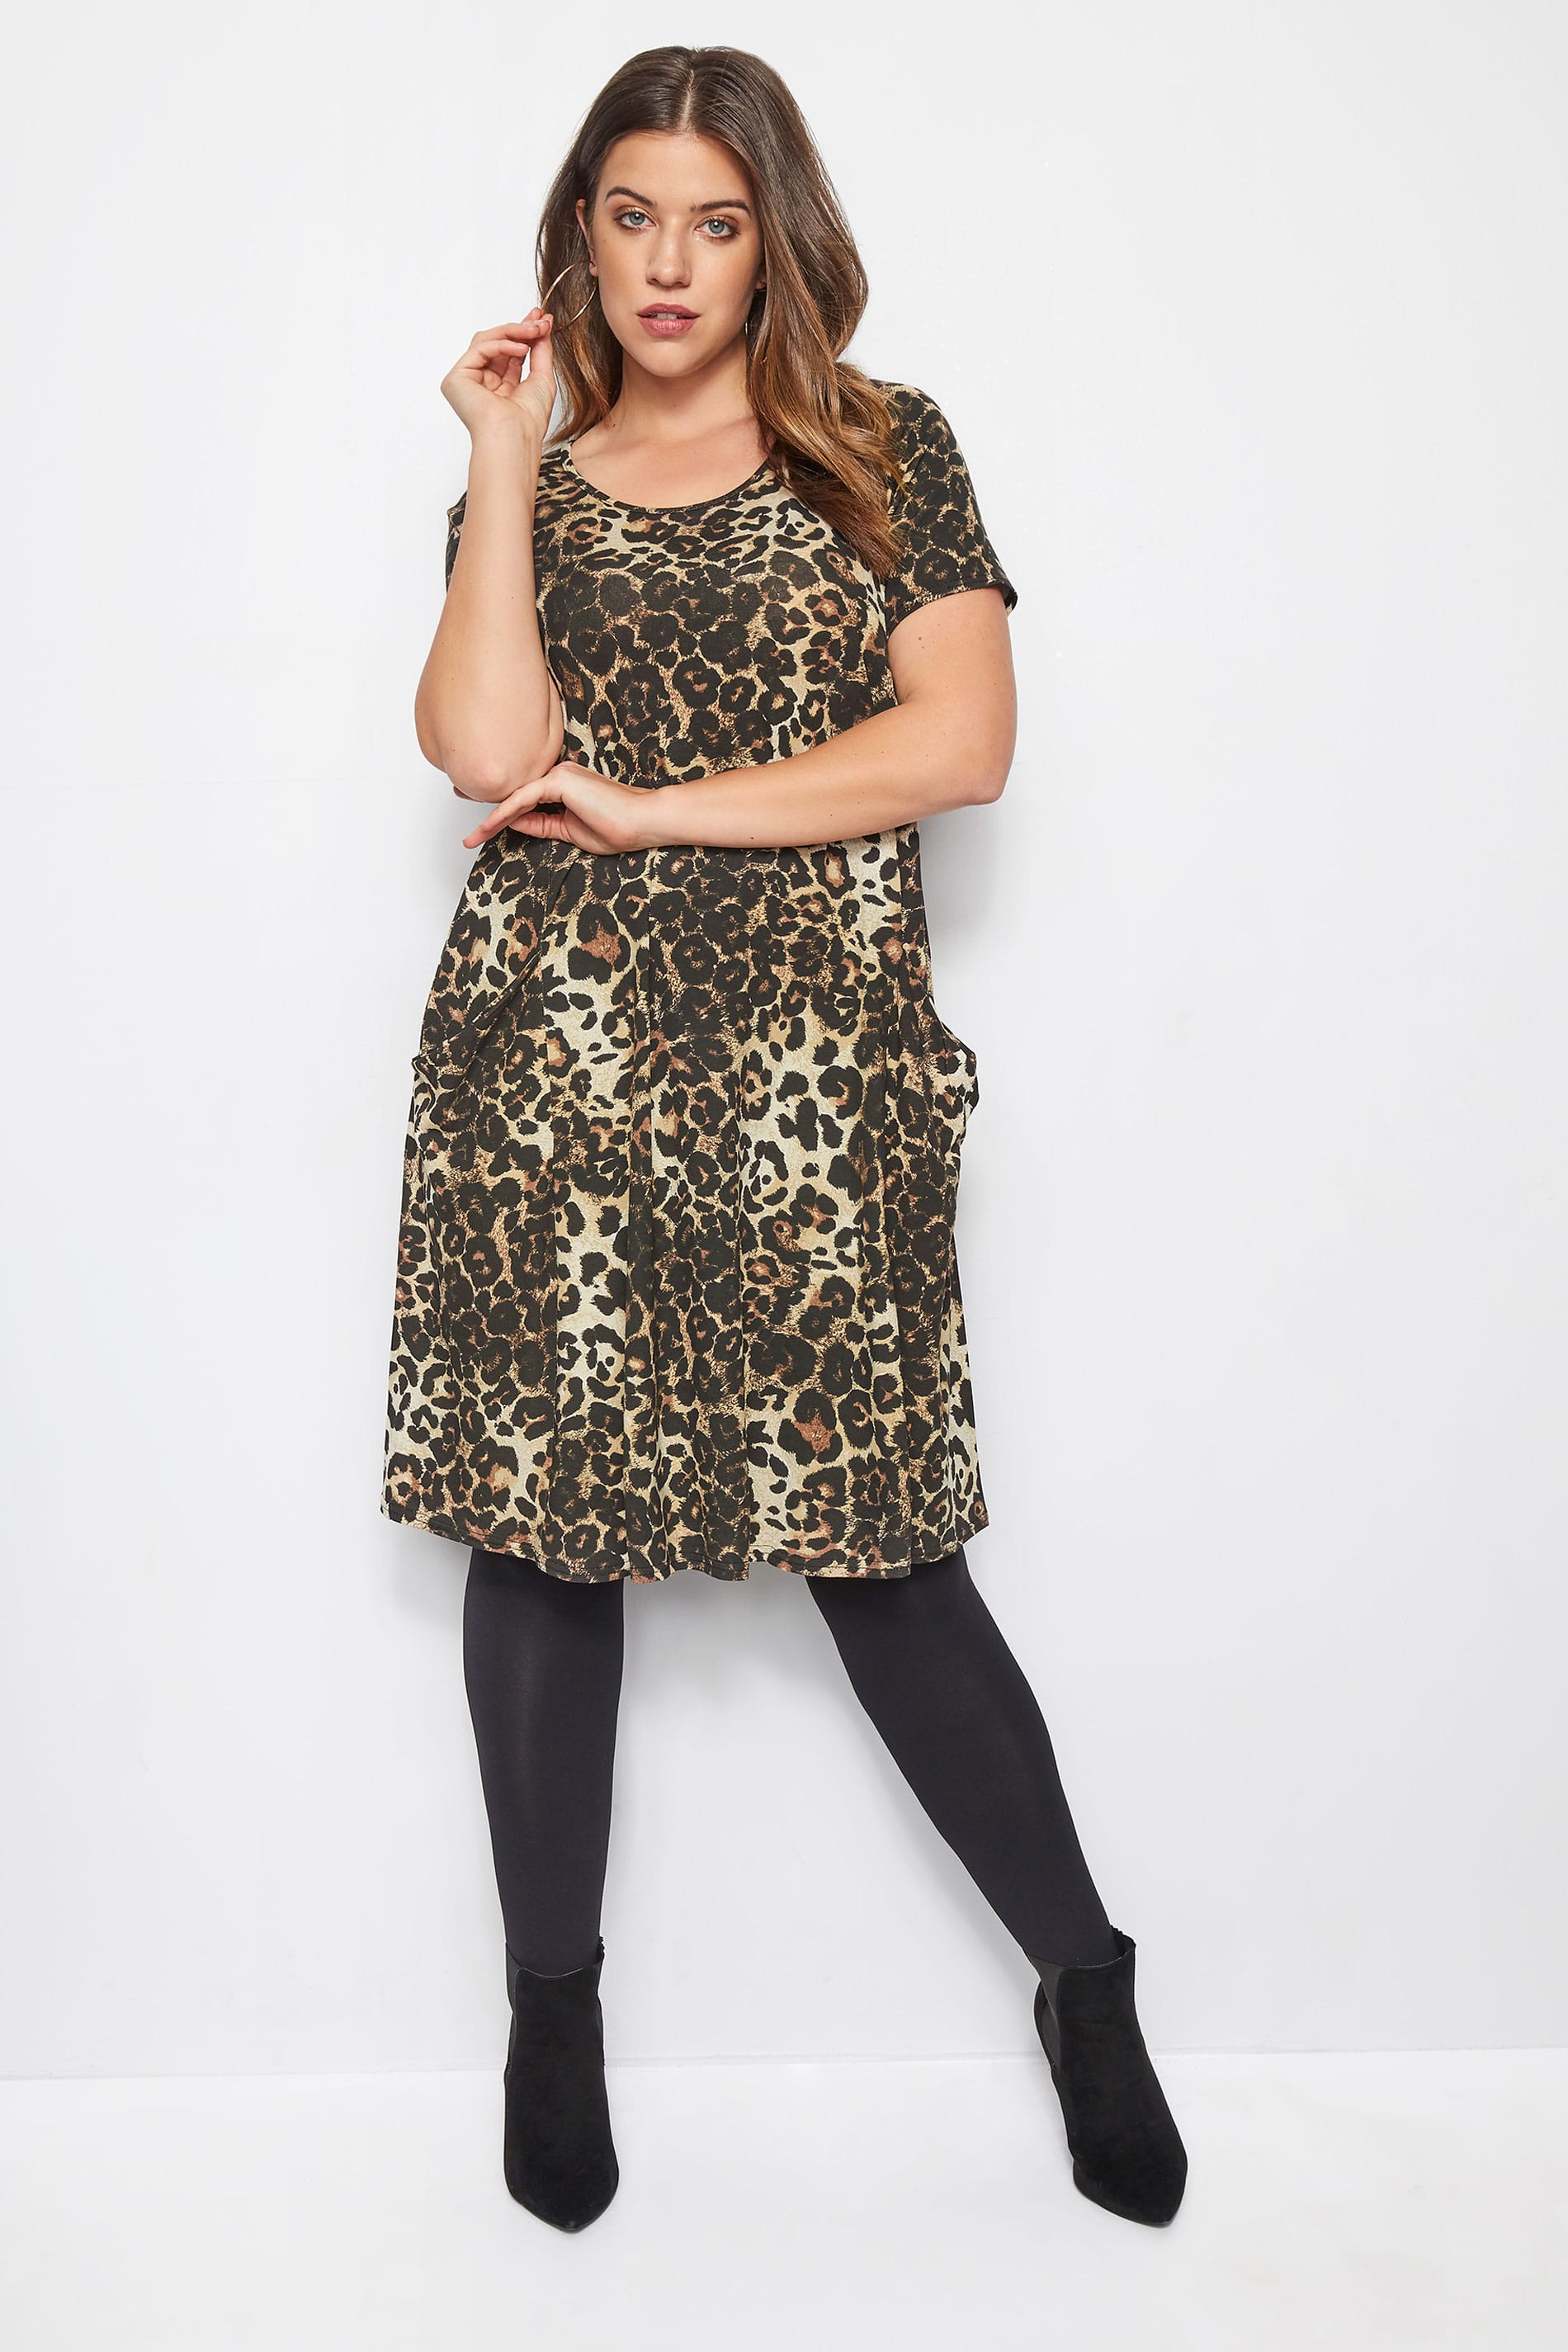 Leopard Print Drape Pocket Dress, Plus size 16 to 36